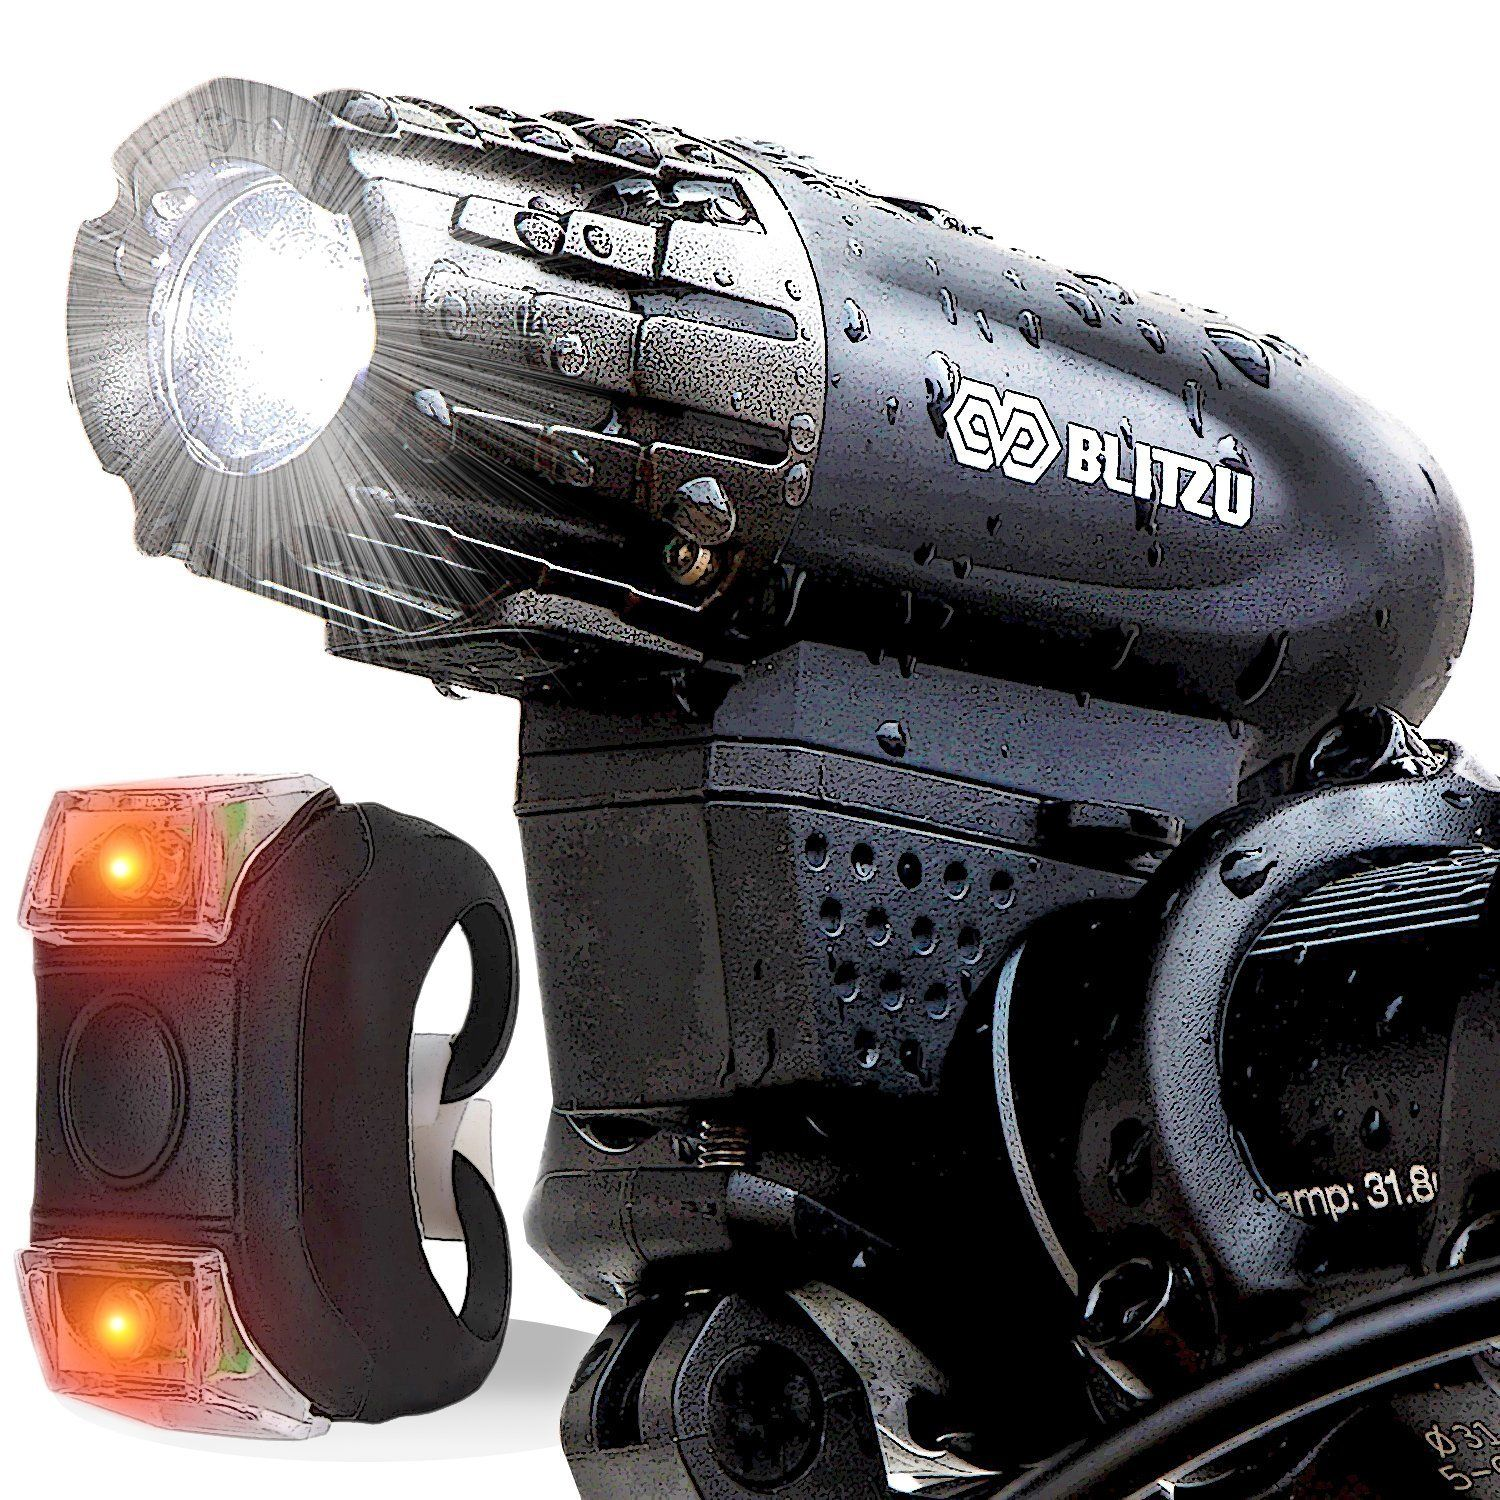 Top 10 Best Bike Headlights In 2020 Reviews With Images Bike